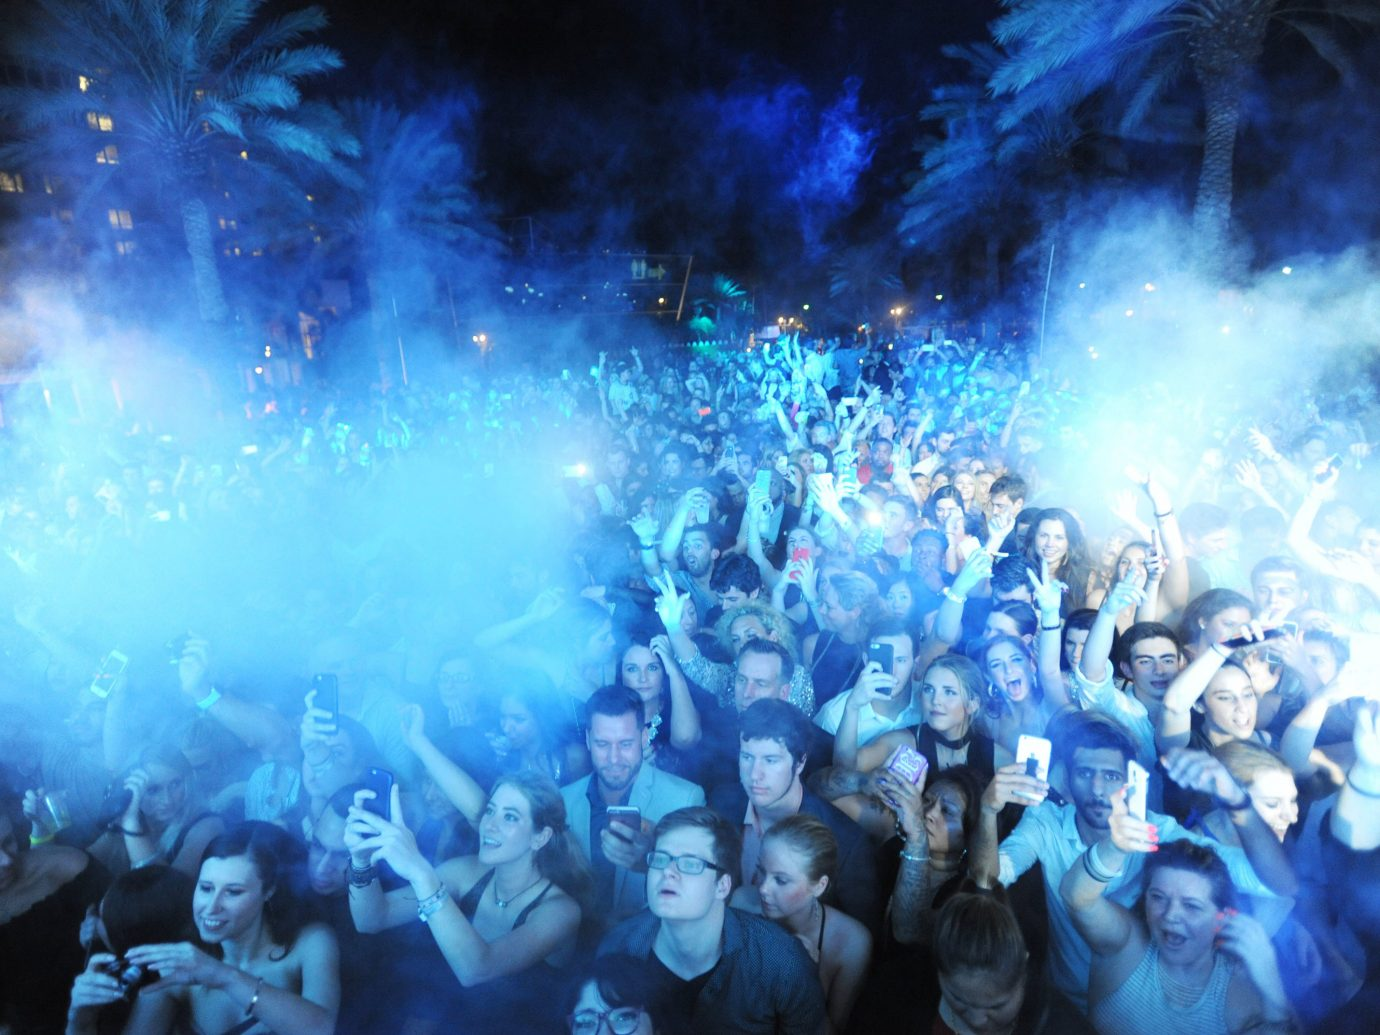 Trip Ideas stage scene person crowd rock concert concert nightclub musical theatre audience night